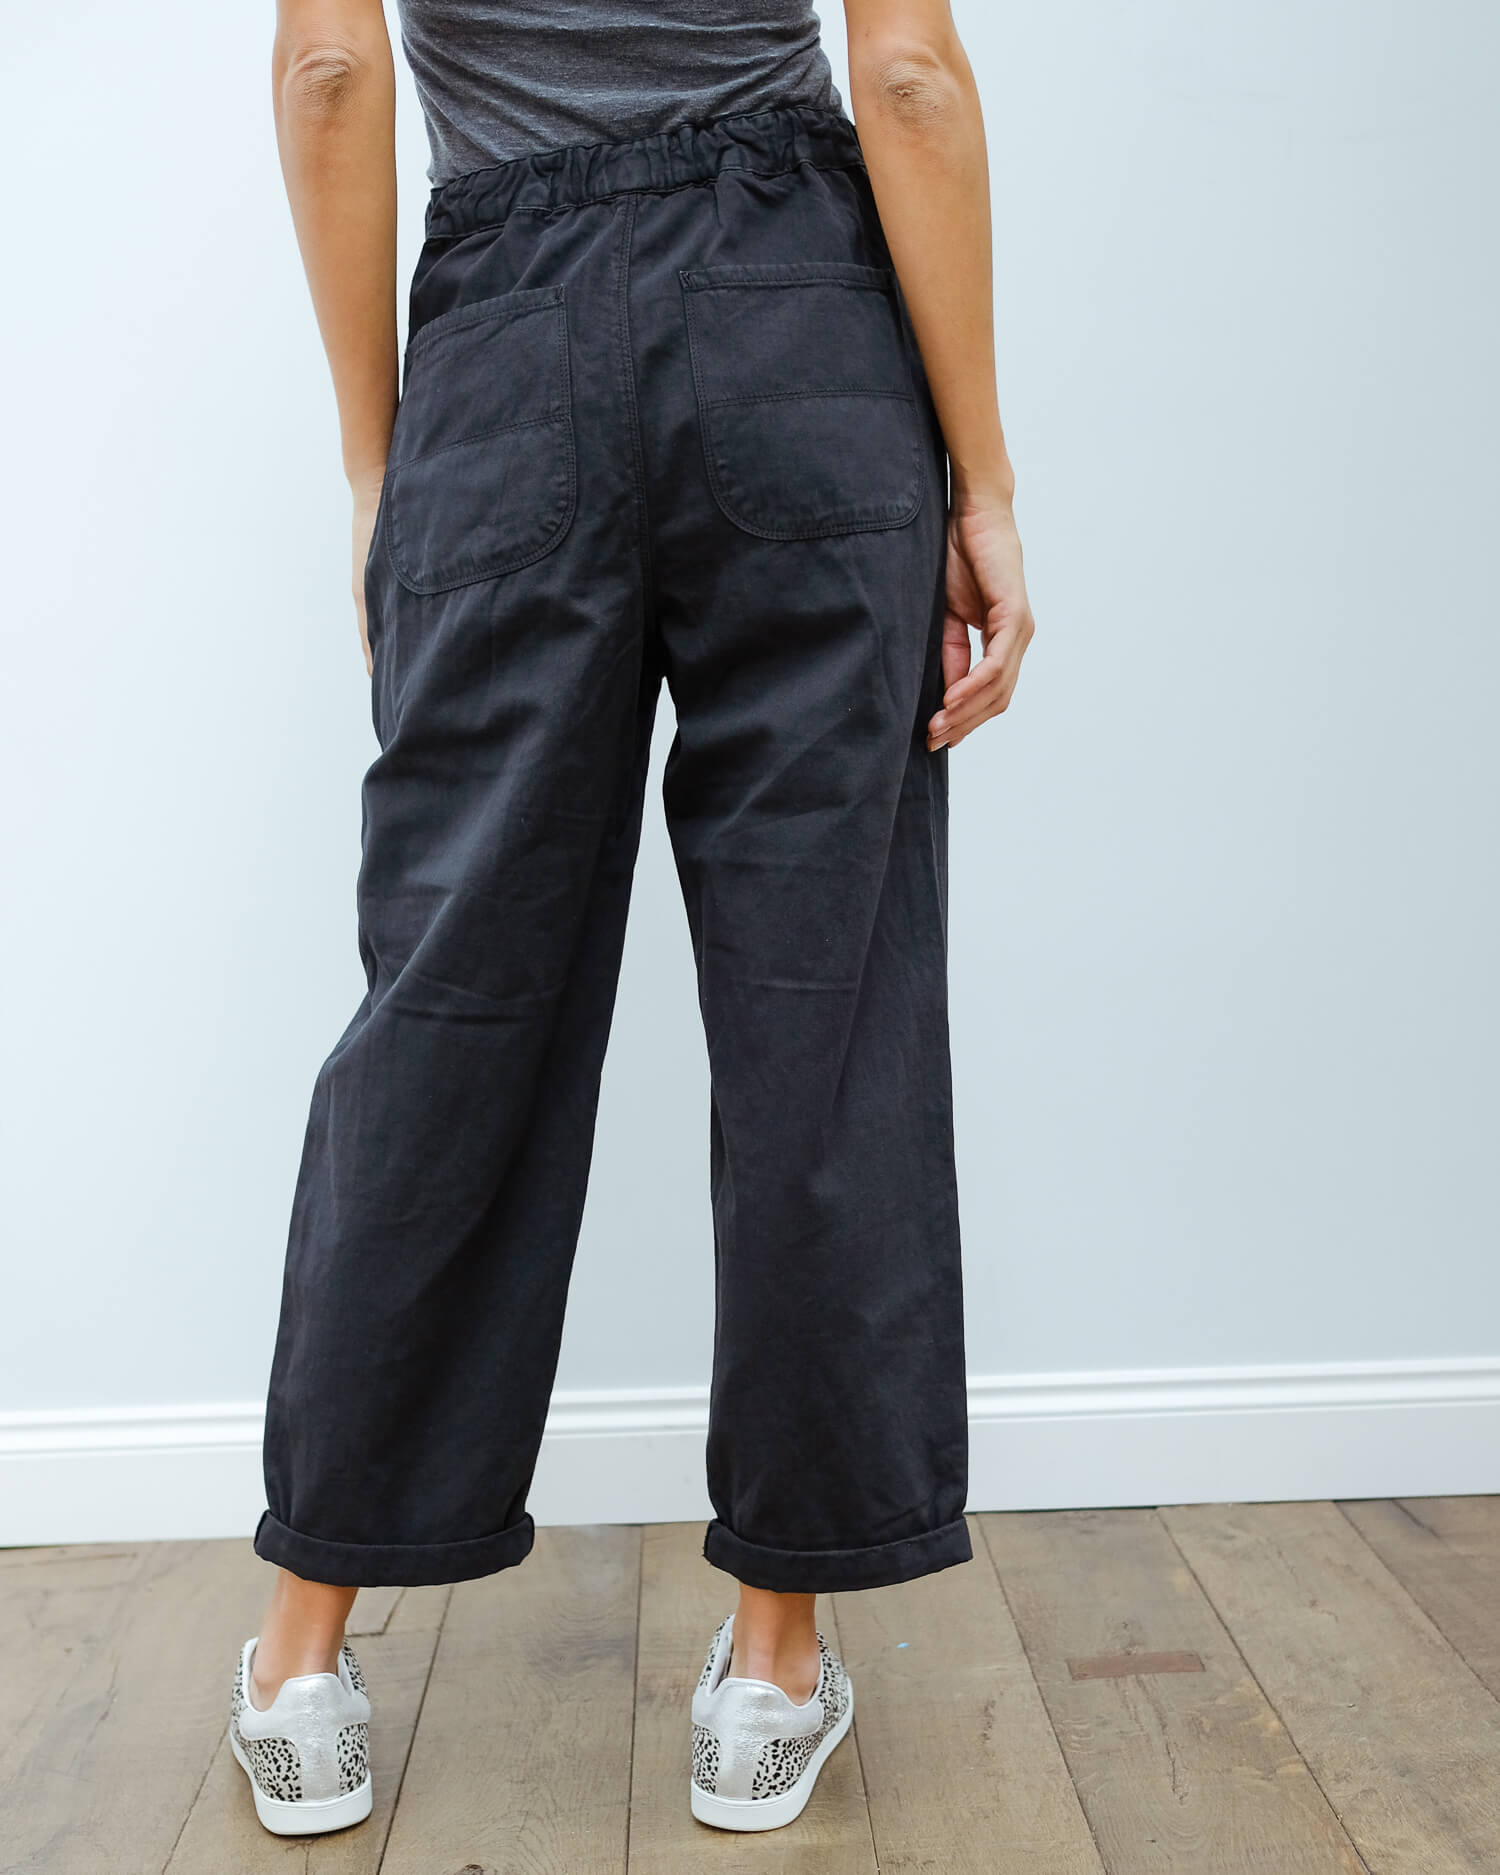 BR Pasop trousers in black blue